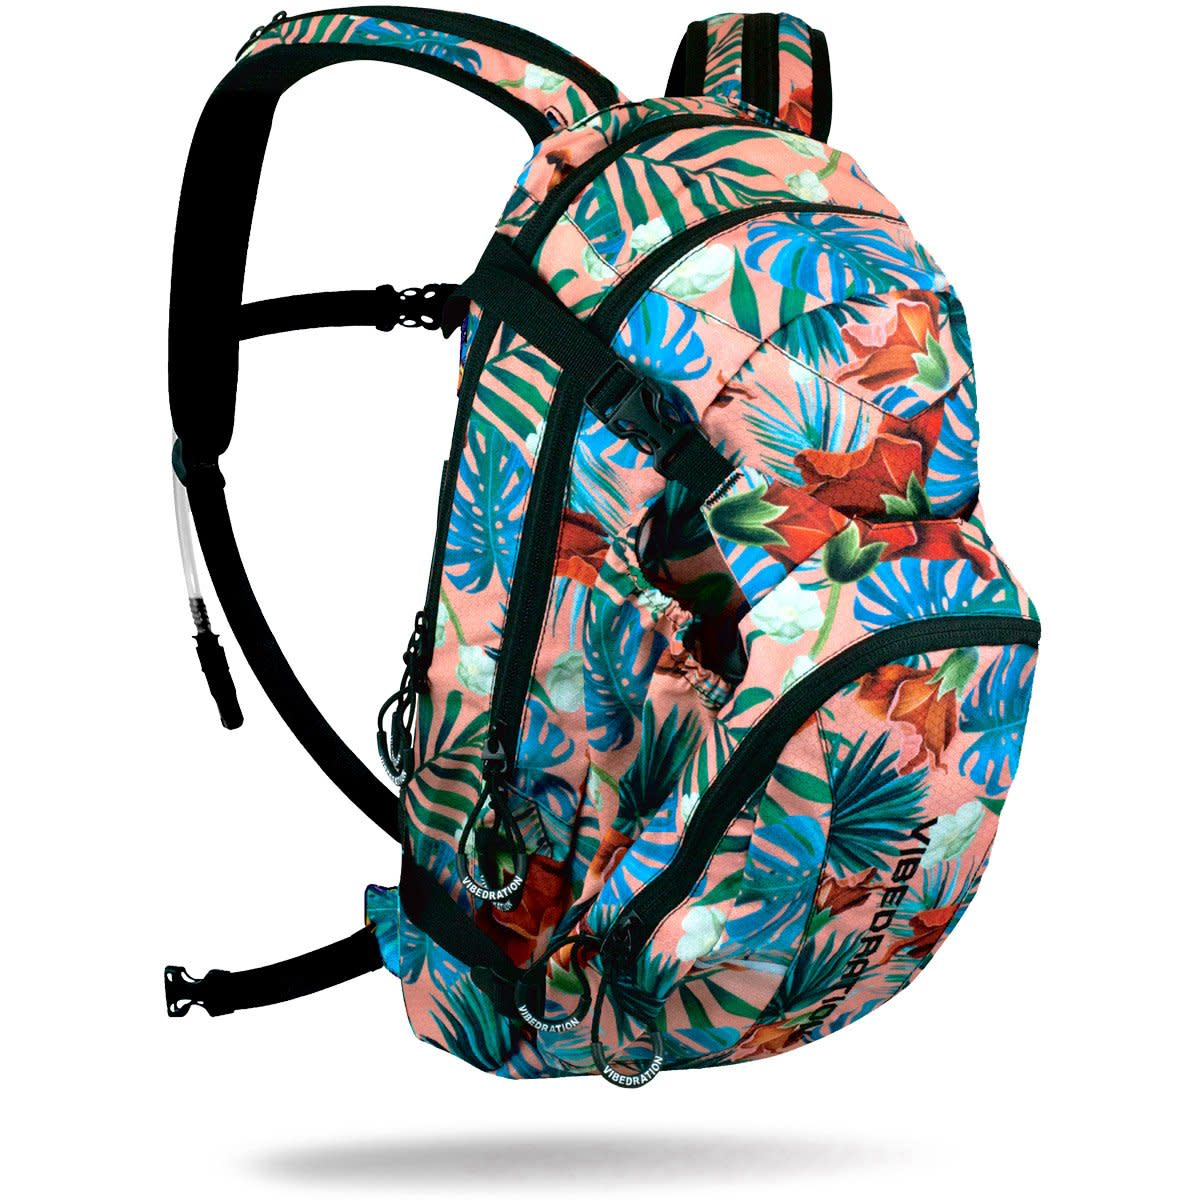 Camping-Backpack-for-Festivals-3-Liter-Maui-Coral-Backstage-Main-45